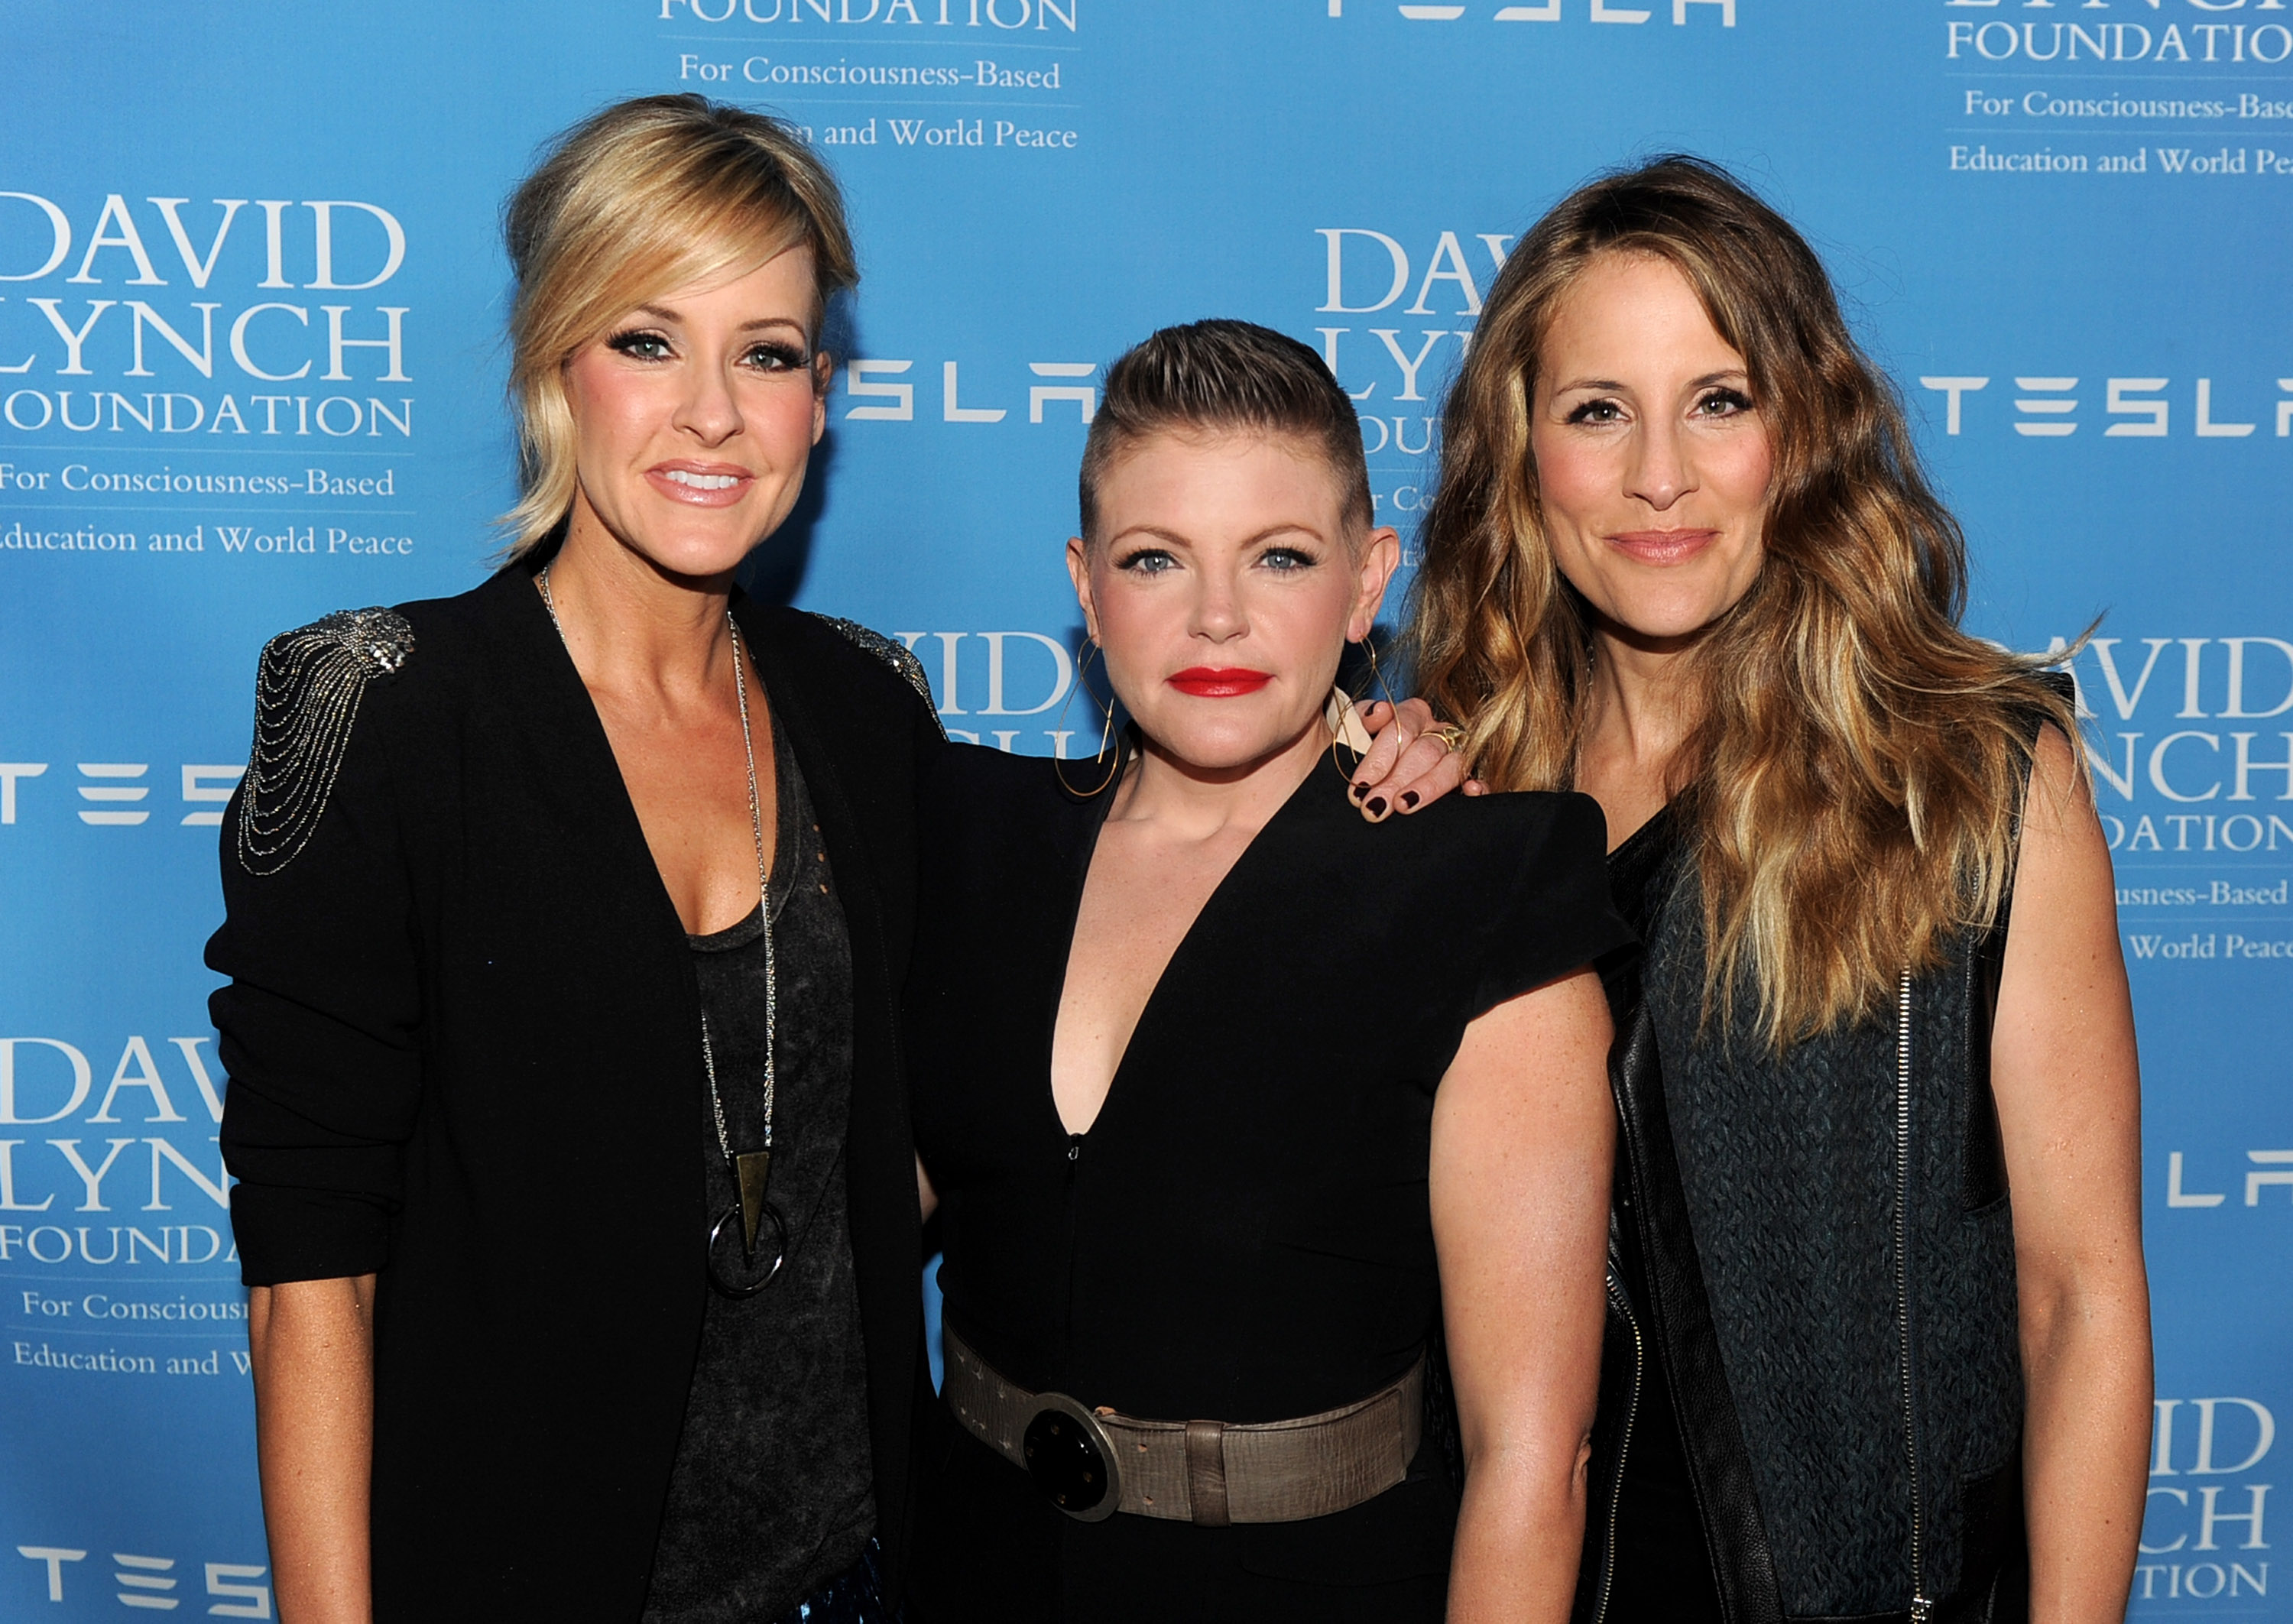 (L-R) Martie Maguire, Natalie Maines and Emily Robison of the Dixie Chicks at the David Lynch Foundation Gala in Beverly Hills, Calif. on Feb. 27, 2014.